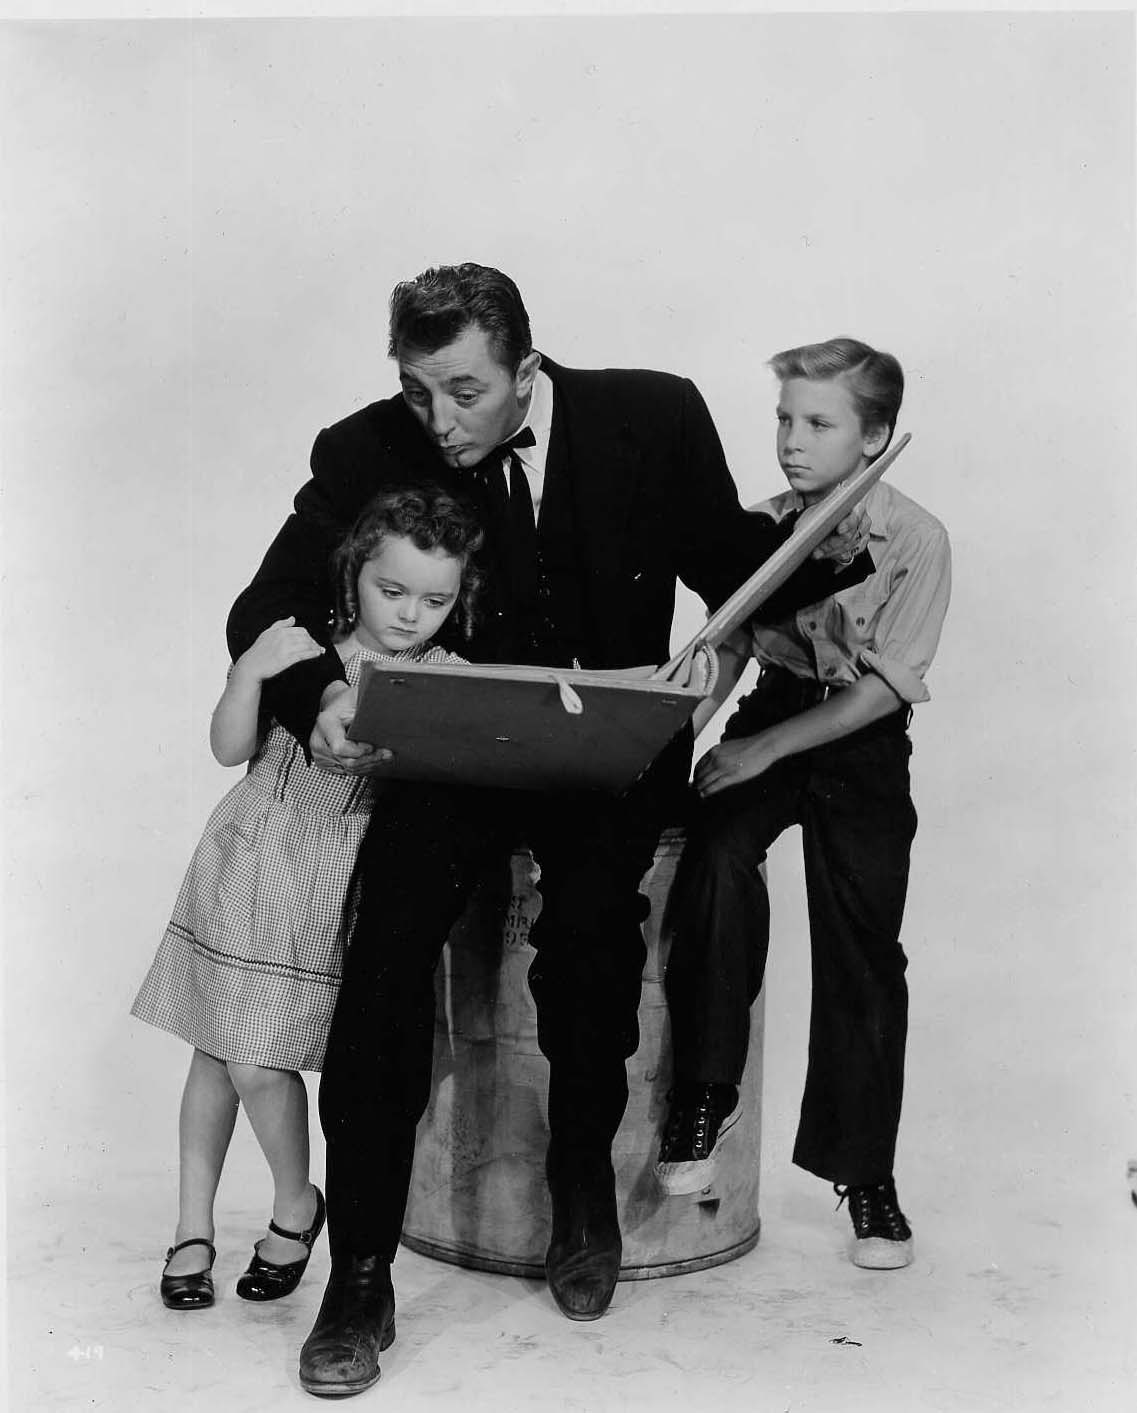 Portrait of Billy Chapin, Robert Mitchum and Sally Jane Bruce for The Night of the hunter directed by Charles Laughton, 1955